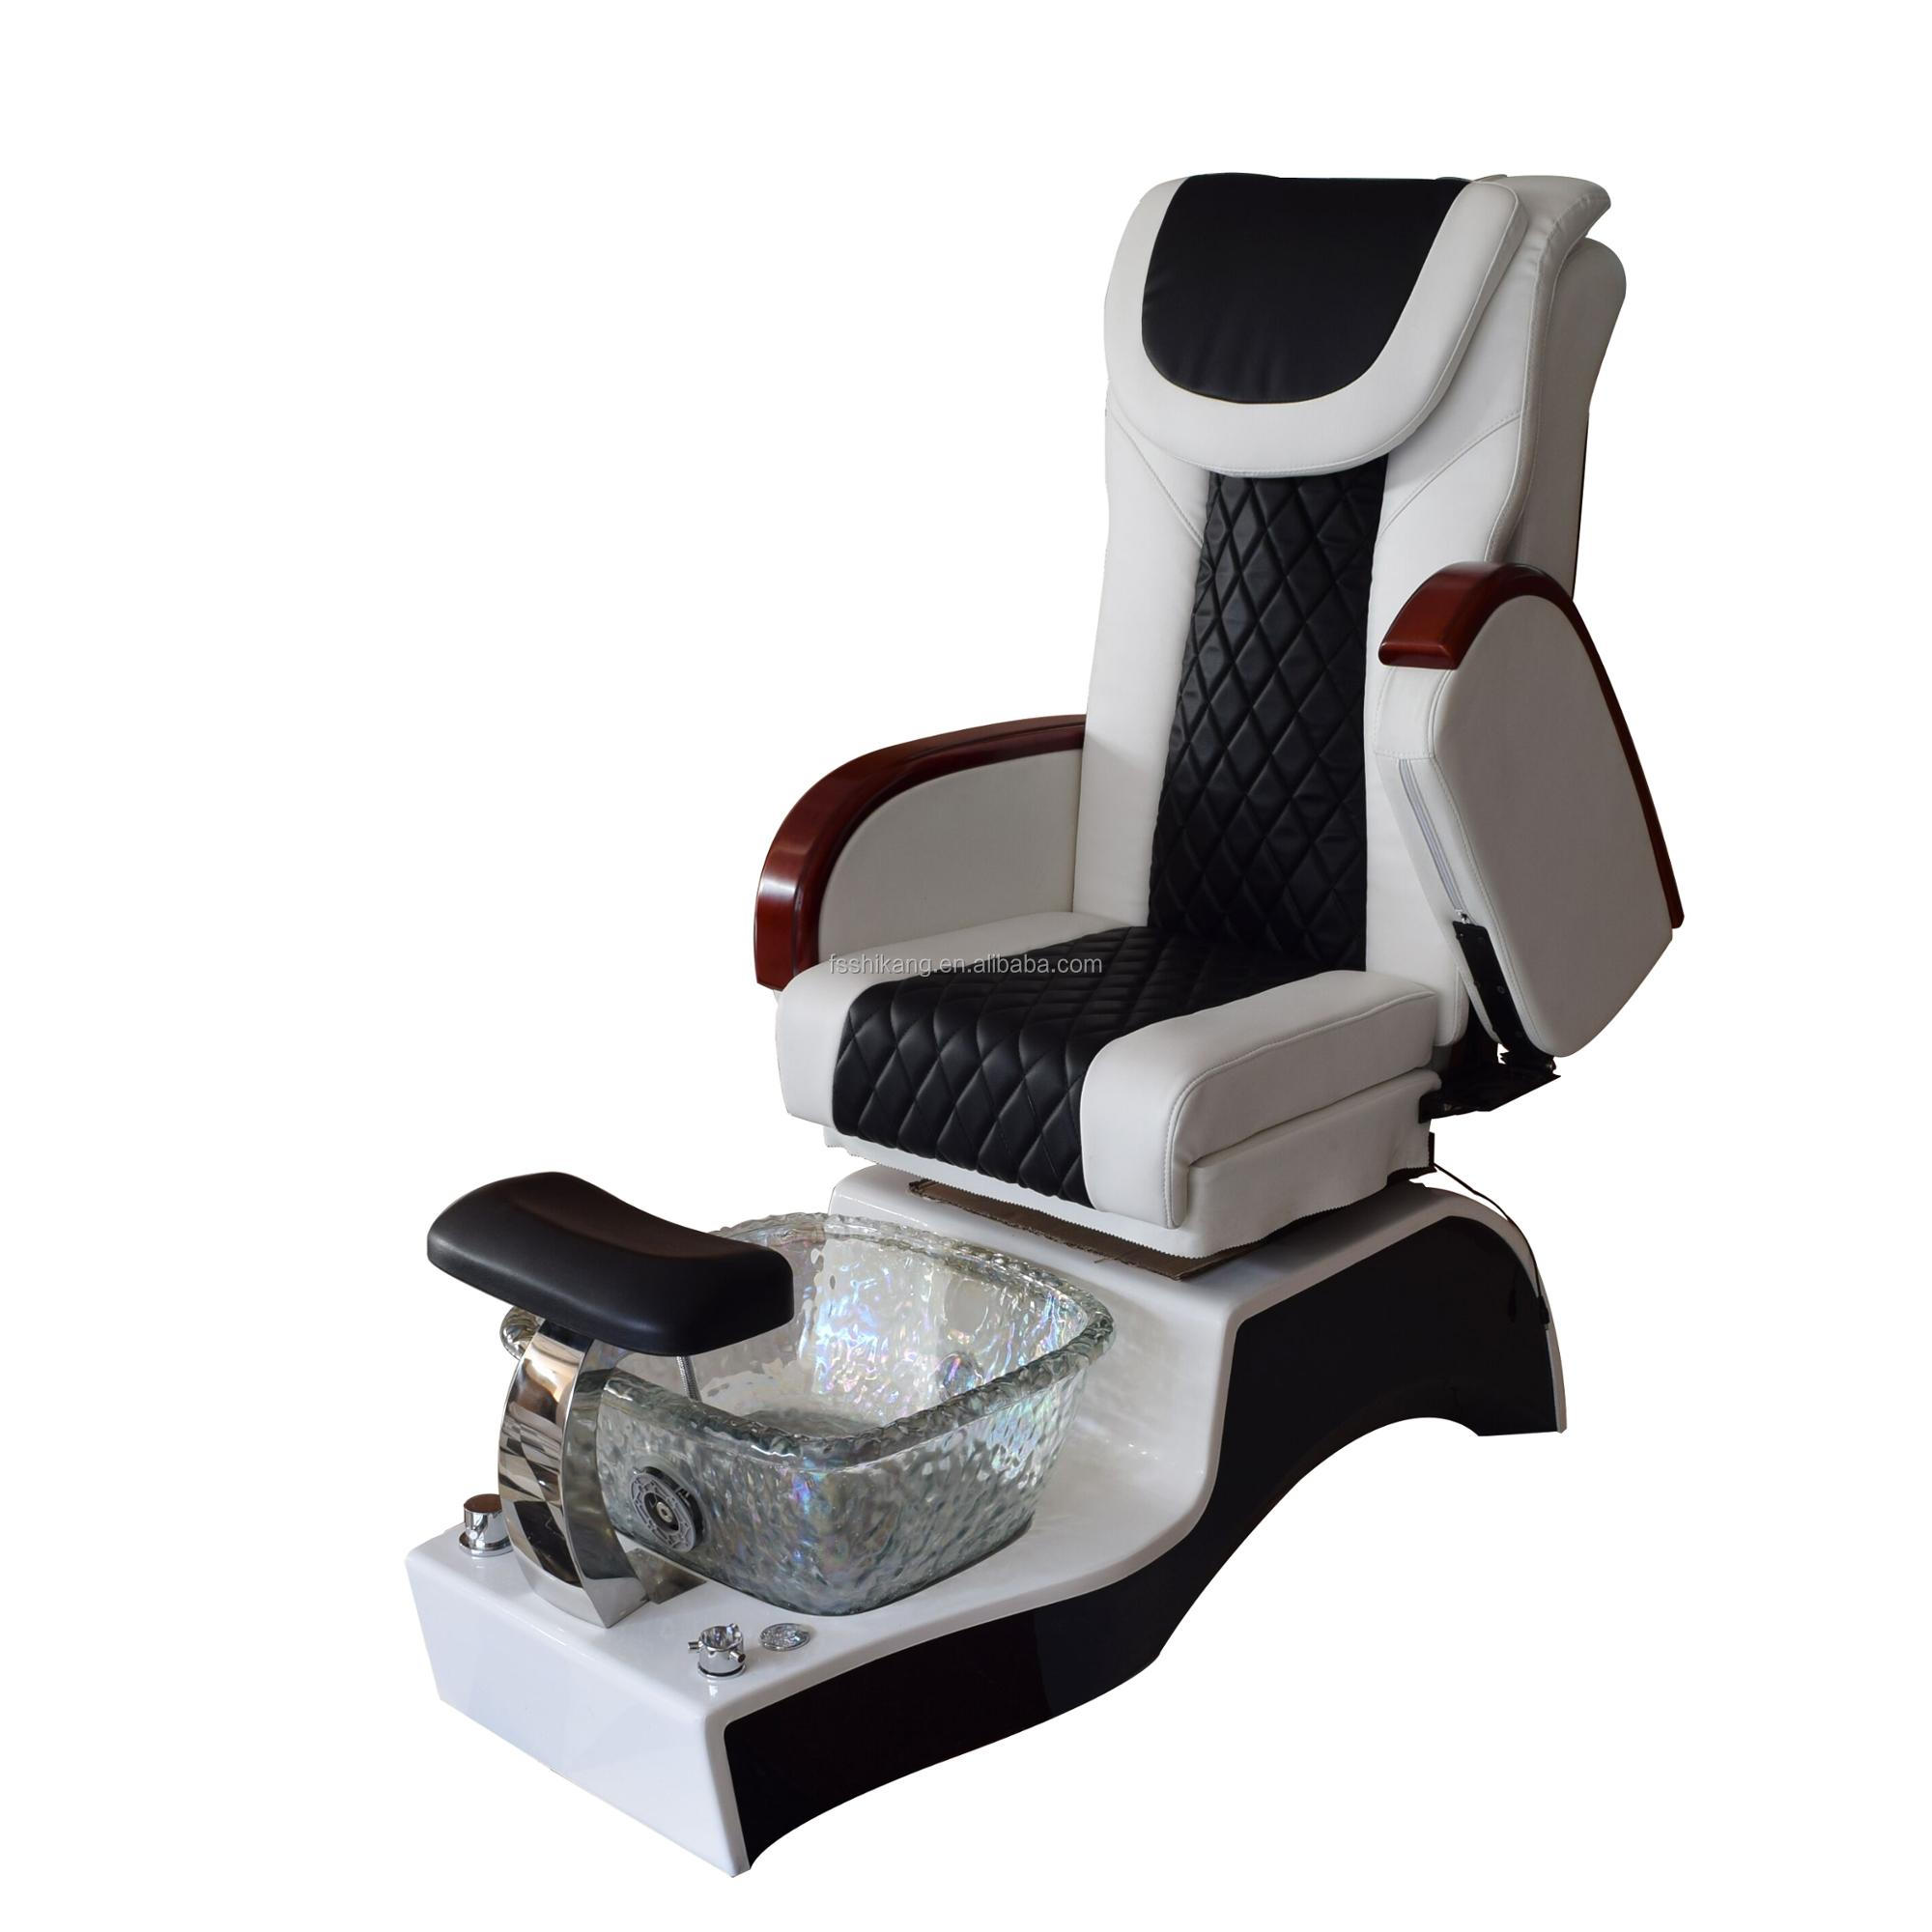 Elderly Pedicure Chair Elderly Pedicure Chair Suppliers and